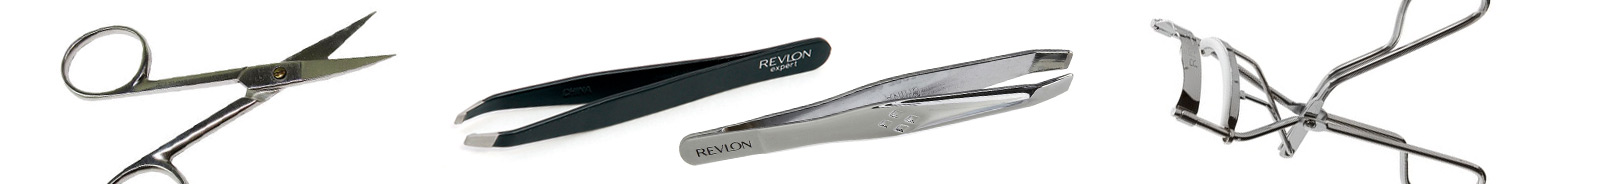 Shop our selection of scissors and tweezers